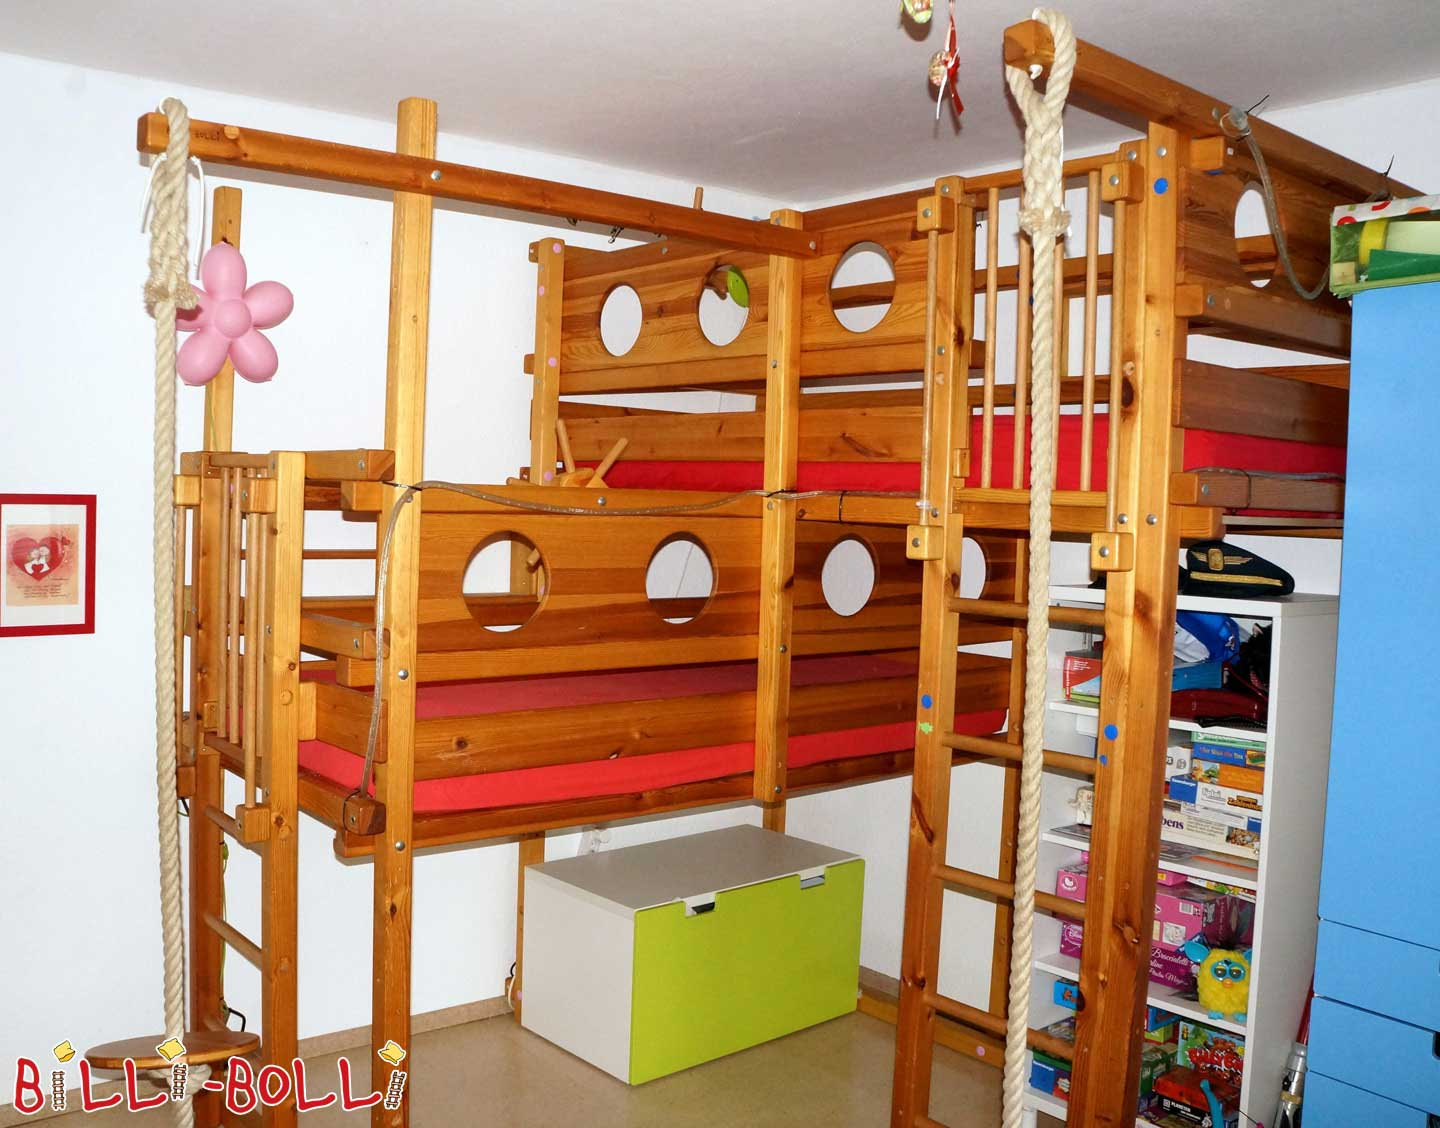 Second hand page 38 billi bolli kids furniture for Bett second hand